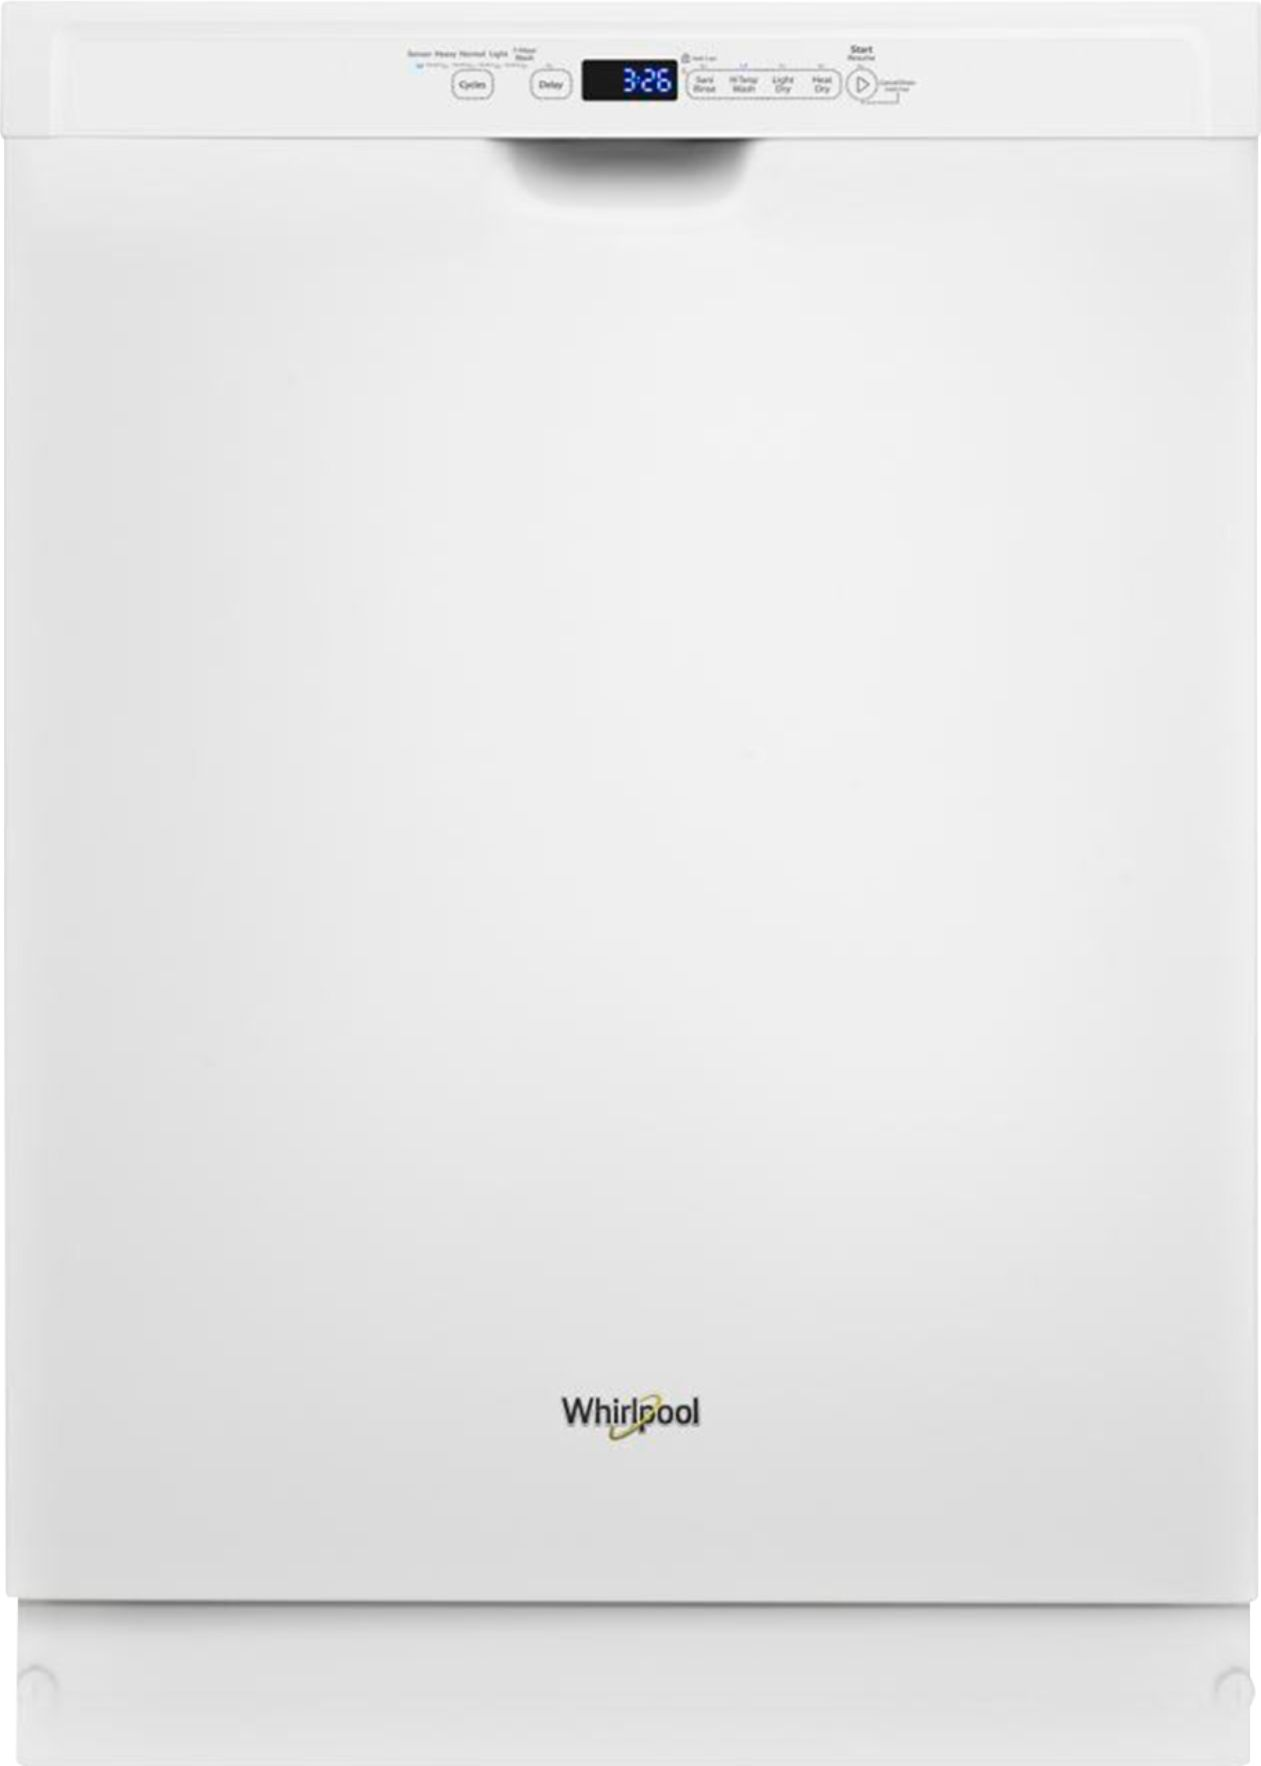 whirlpool front control built in dishwasher with stainless steel tub 3rd rack 50 dba white